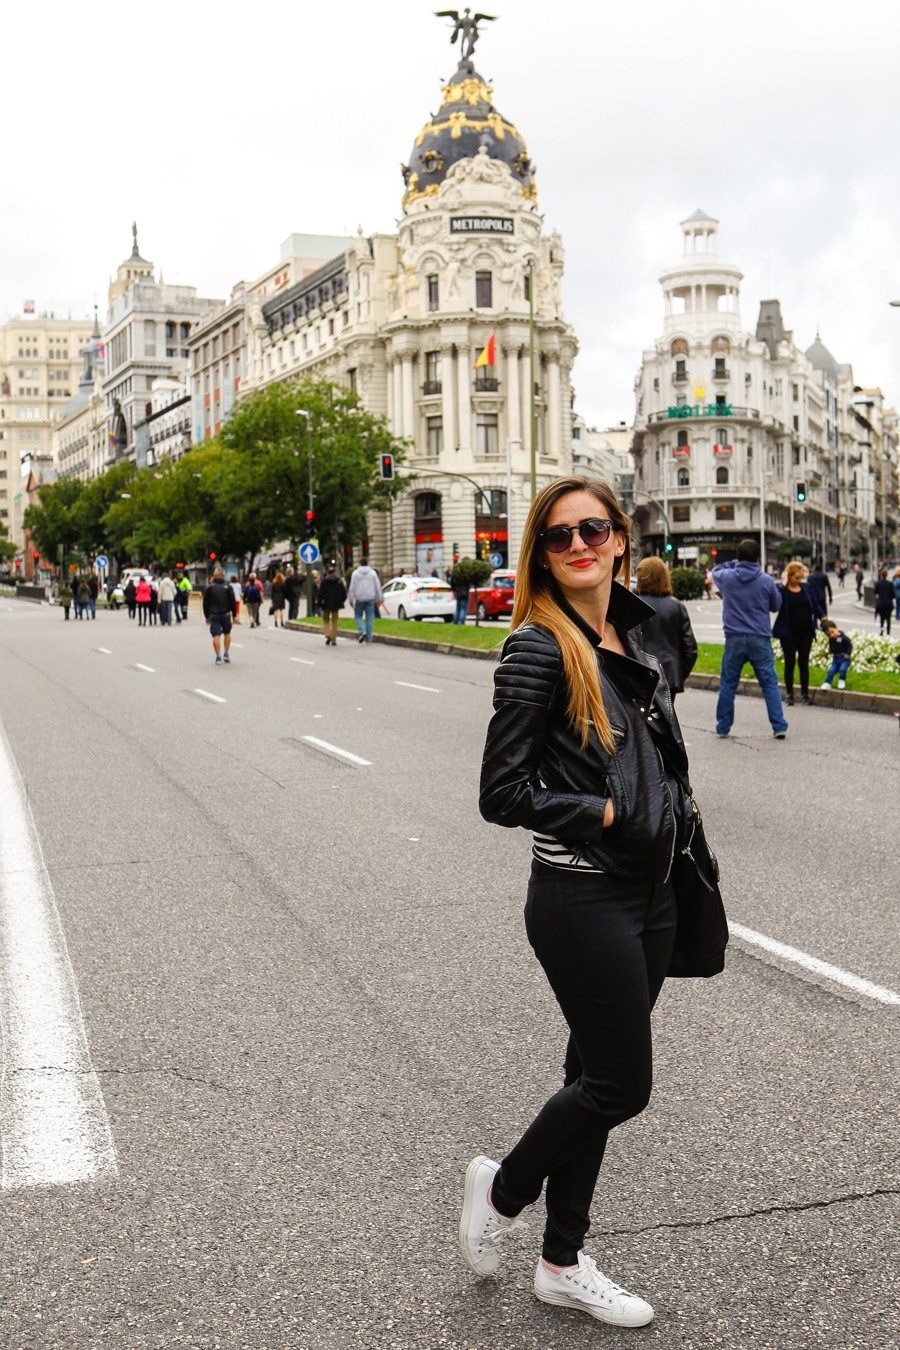 Levitate Style, Levitate Travel, His & Her, Stripes, Alicia Mara, menswear, Madrid Spain Travel